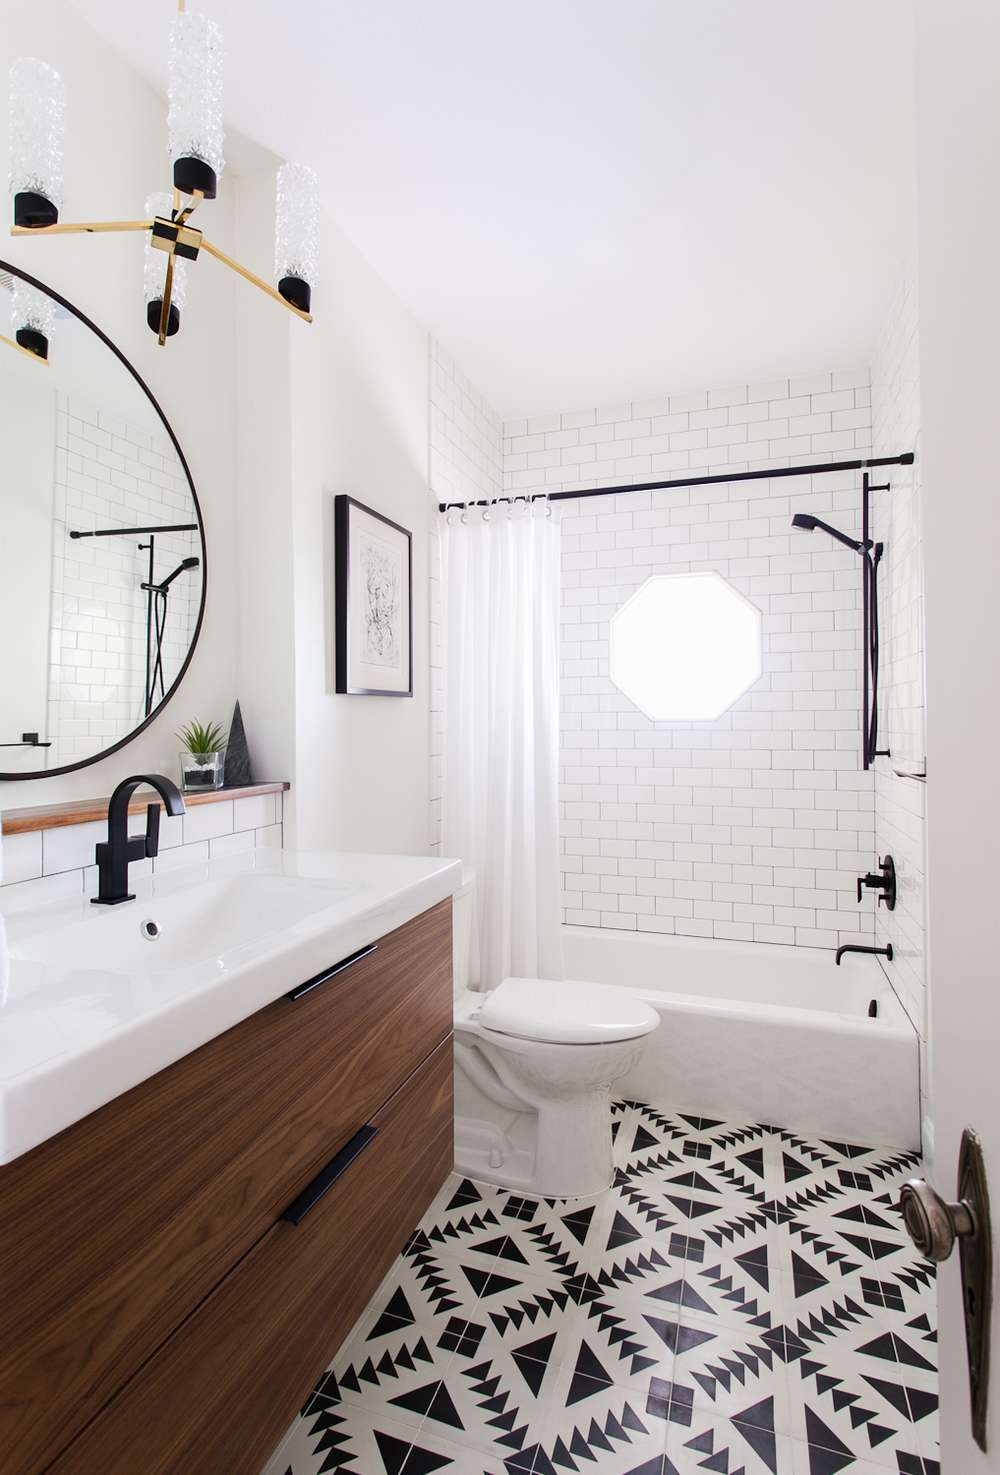 Bathroom with black and white cement tiles